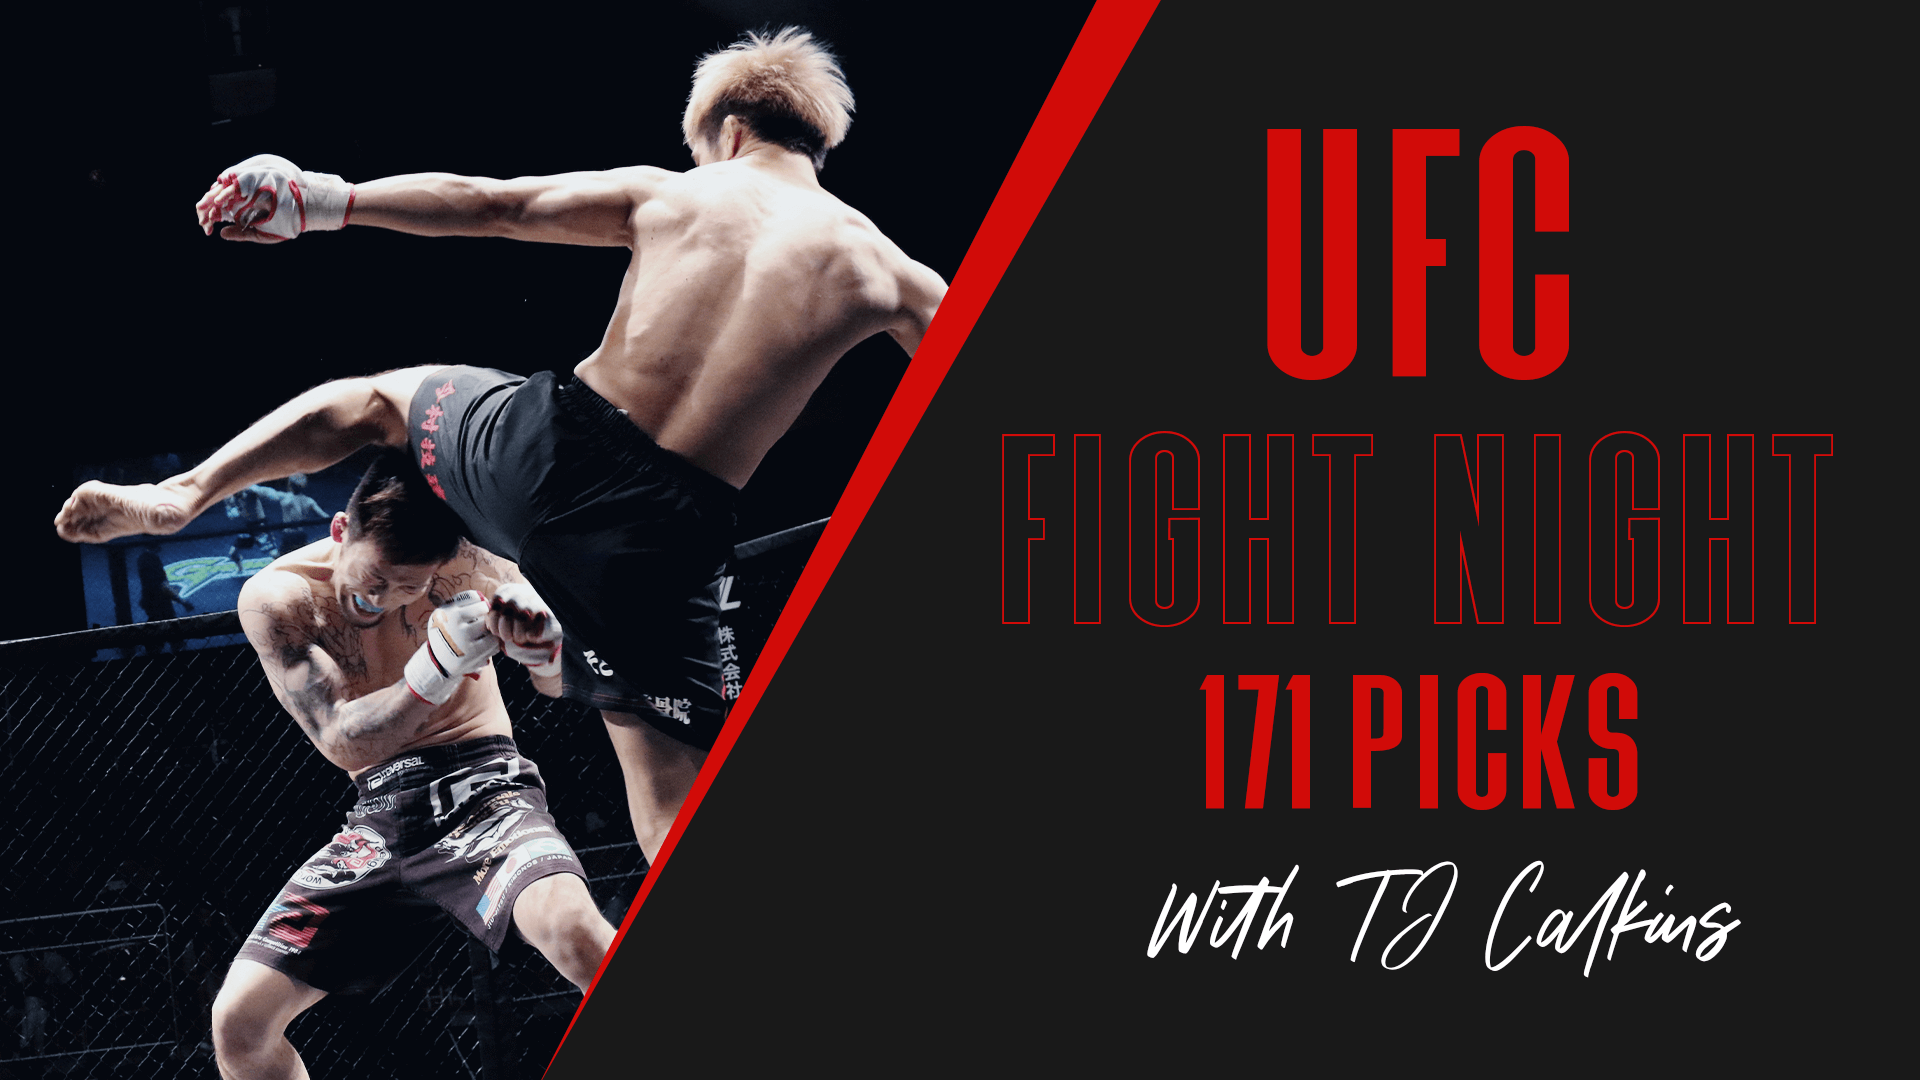 UFC Fight Night 171 Picks on US sportsbonus